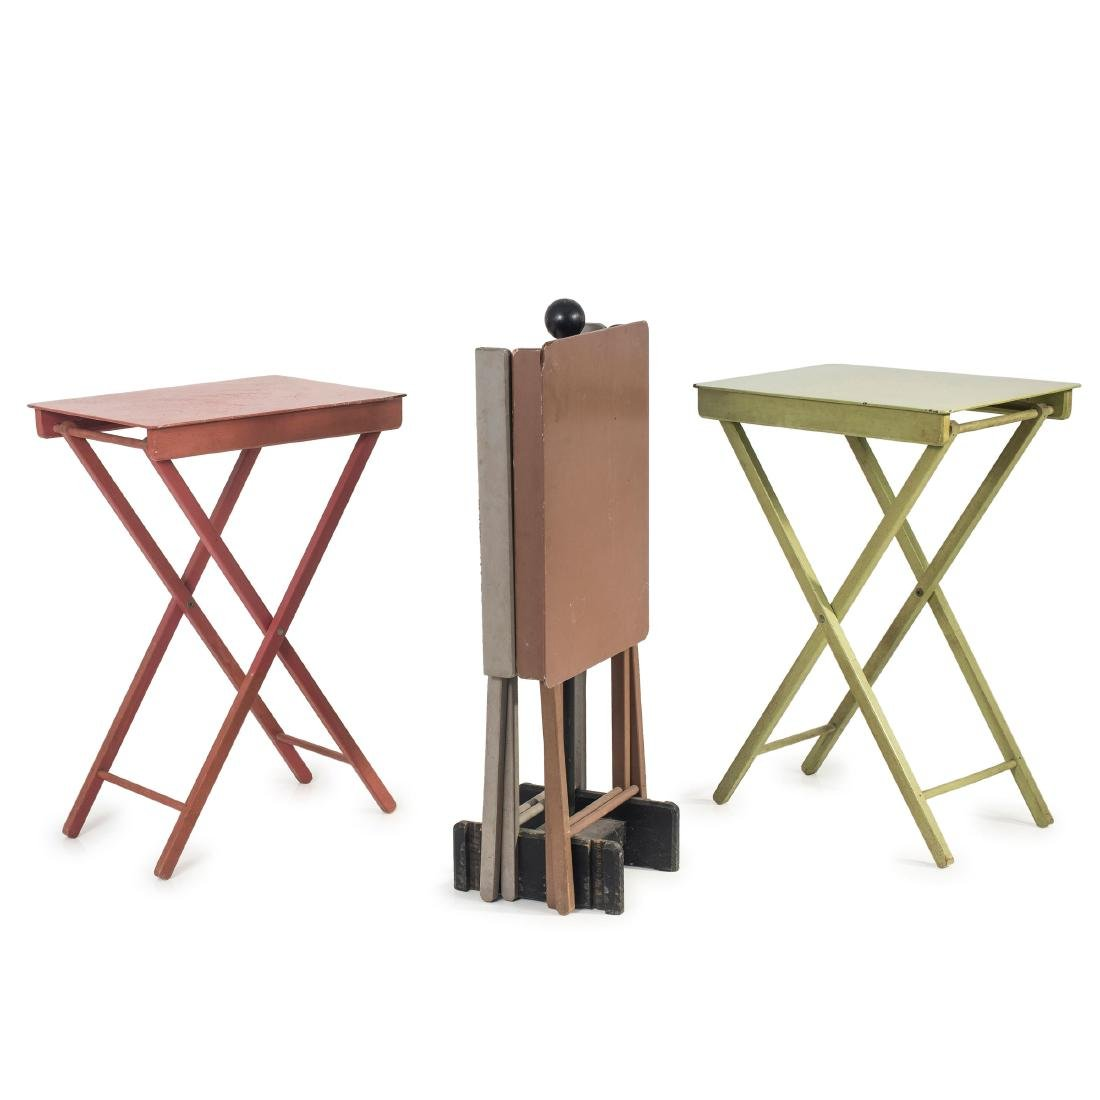 Four camping tables, 1930s